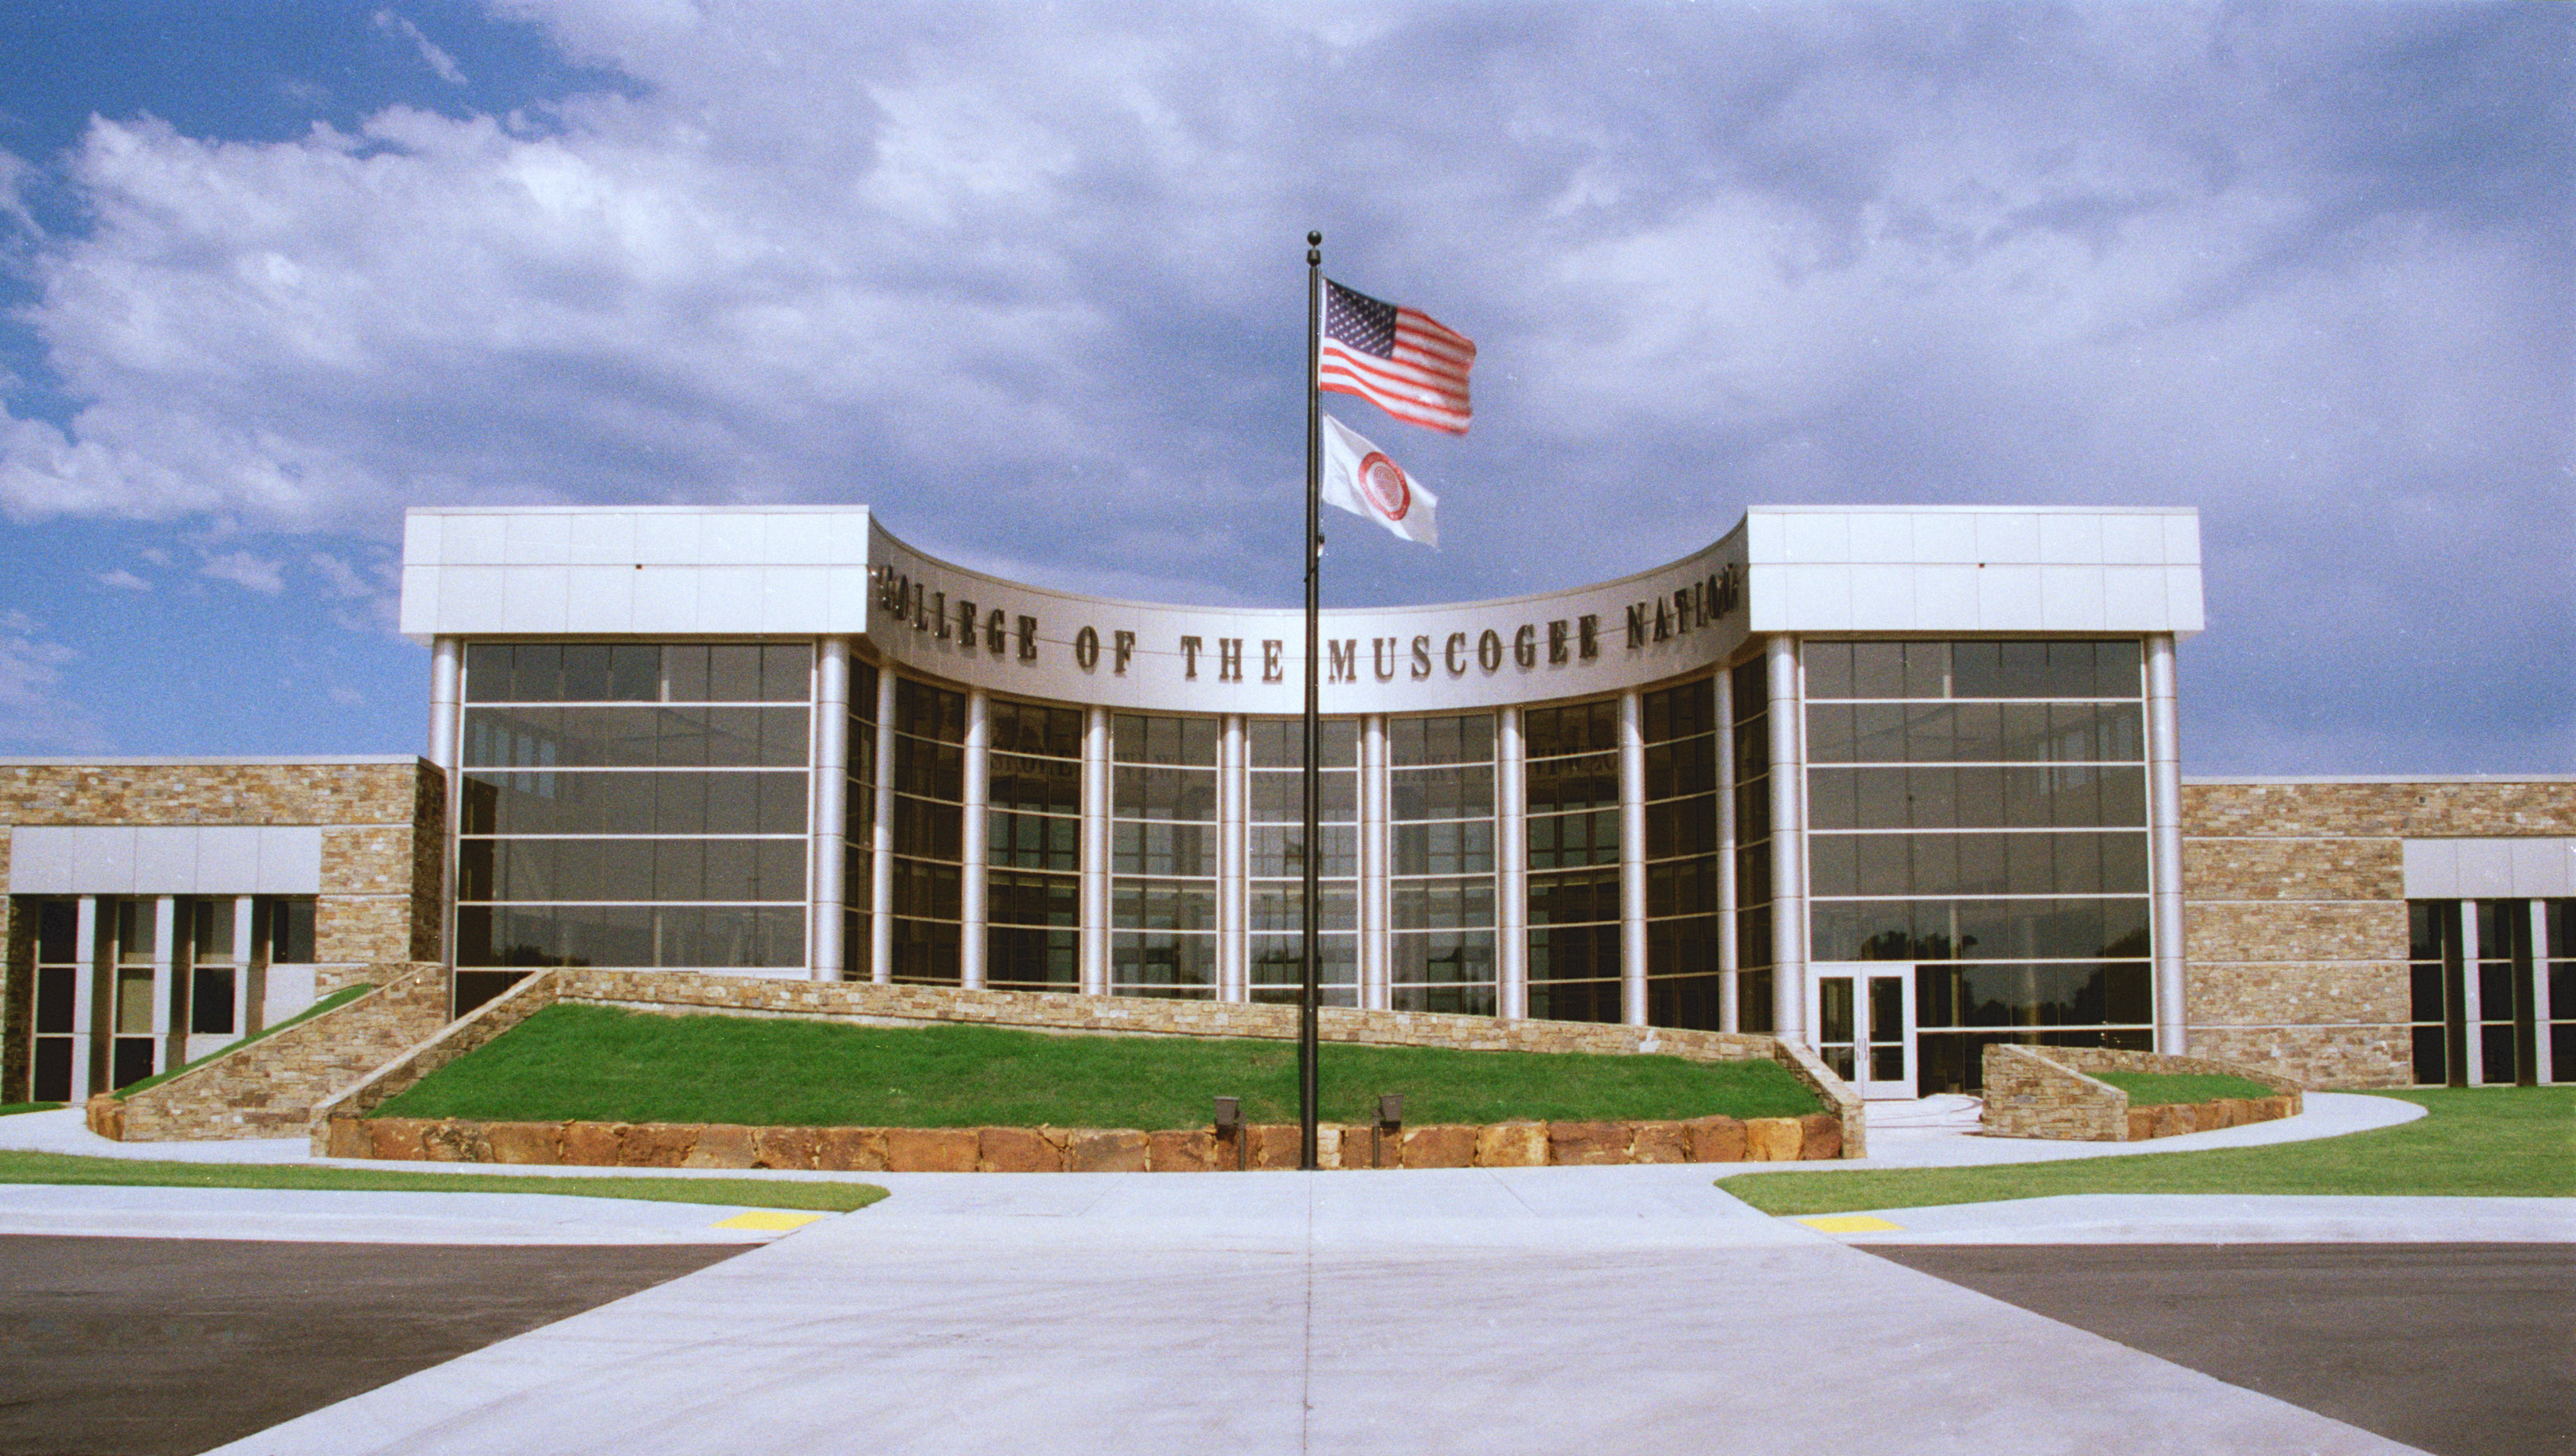 muscogee creek nation The muscogee creek nation, okmulgee, oklahoma 66k likes the muscogee (creek) nation operates as a self- determined visionary government, designing.